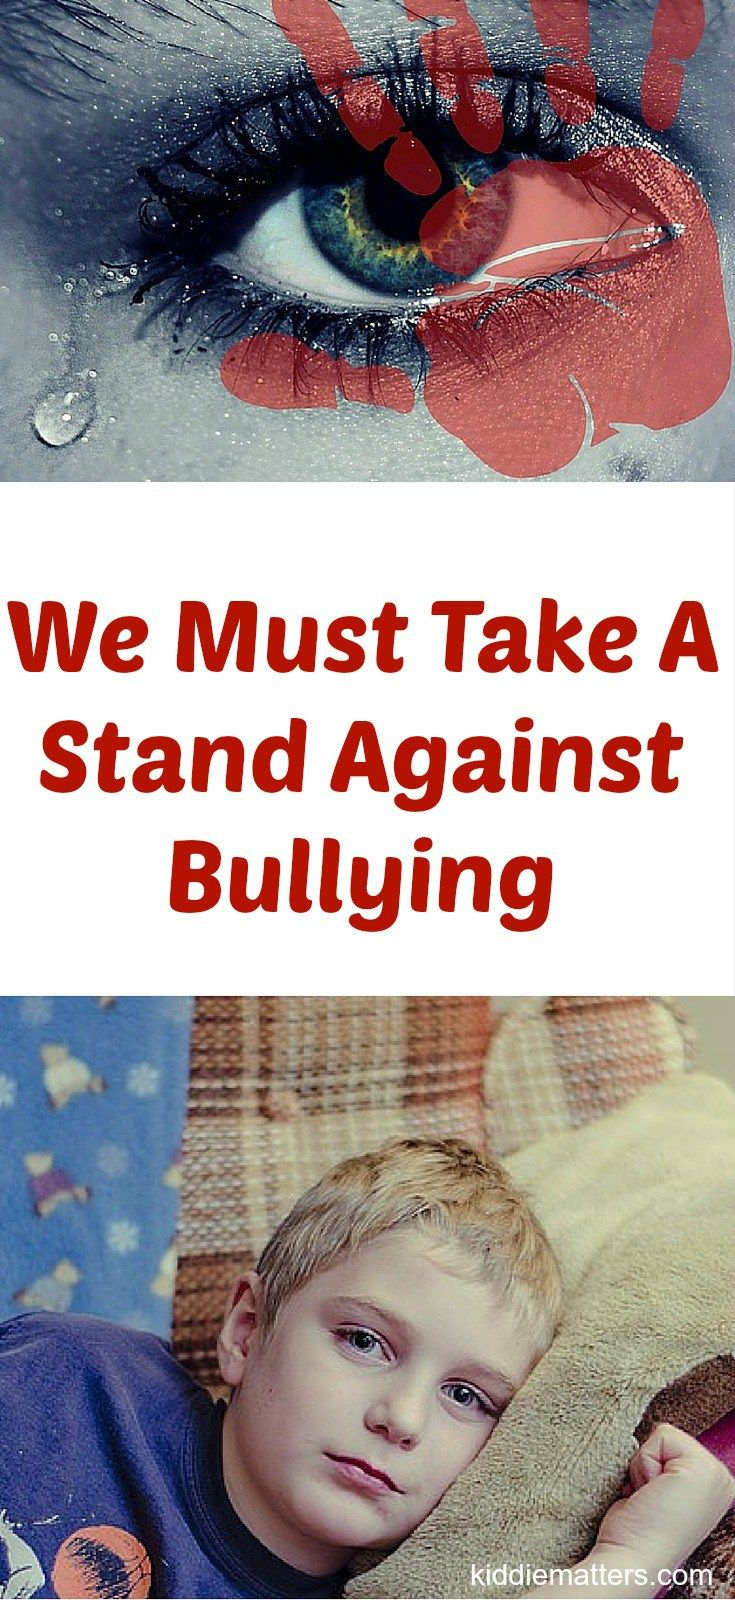 We Must Take A Stand Against Bullying